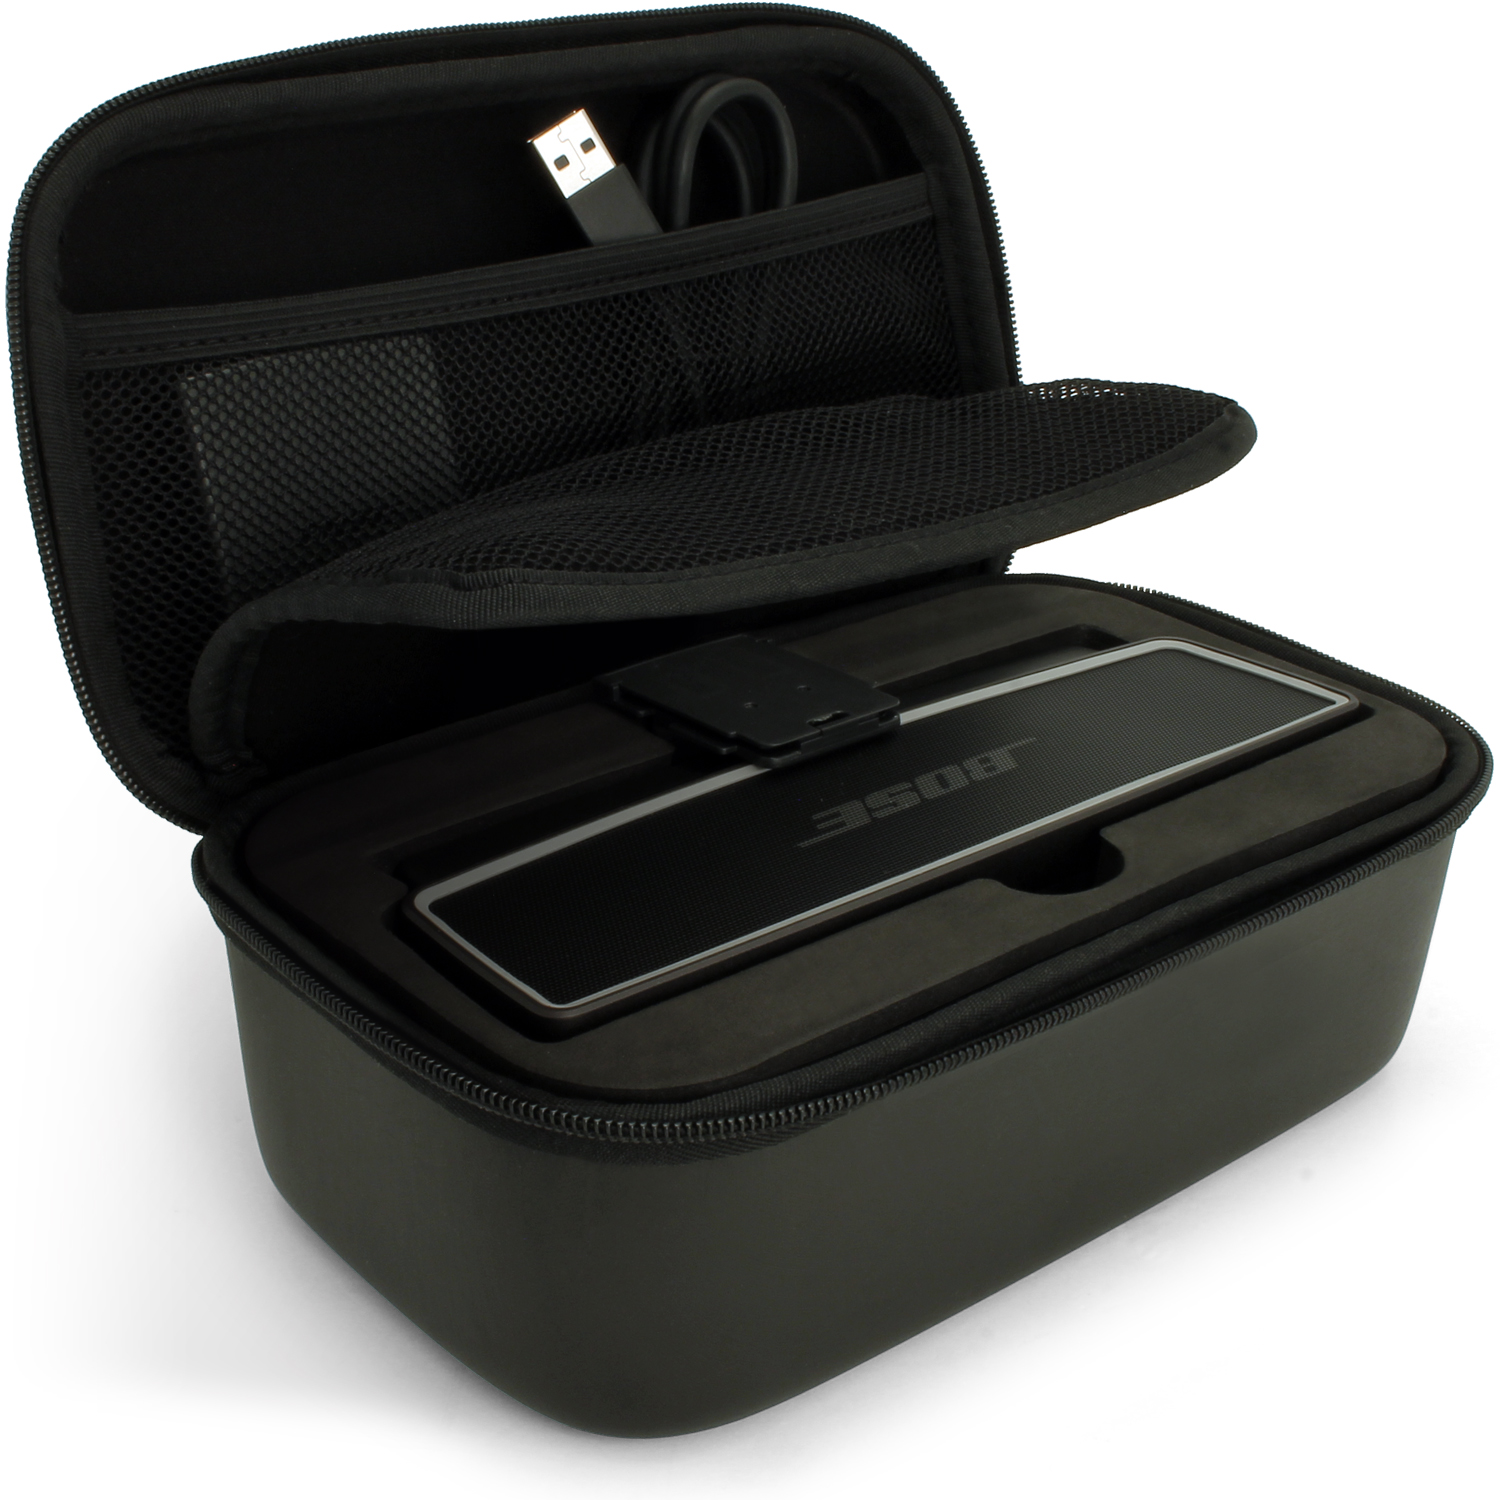 iGadigtz Black EVA Carrying Hard Travel Case Cover for Bose SoundLink Mini I & II Bluetooth Speaker